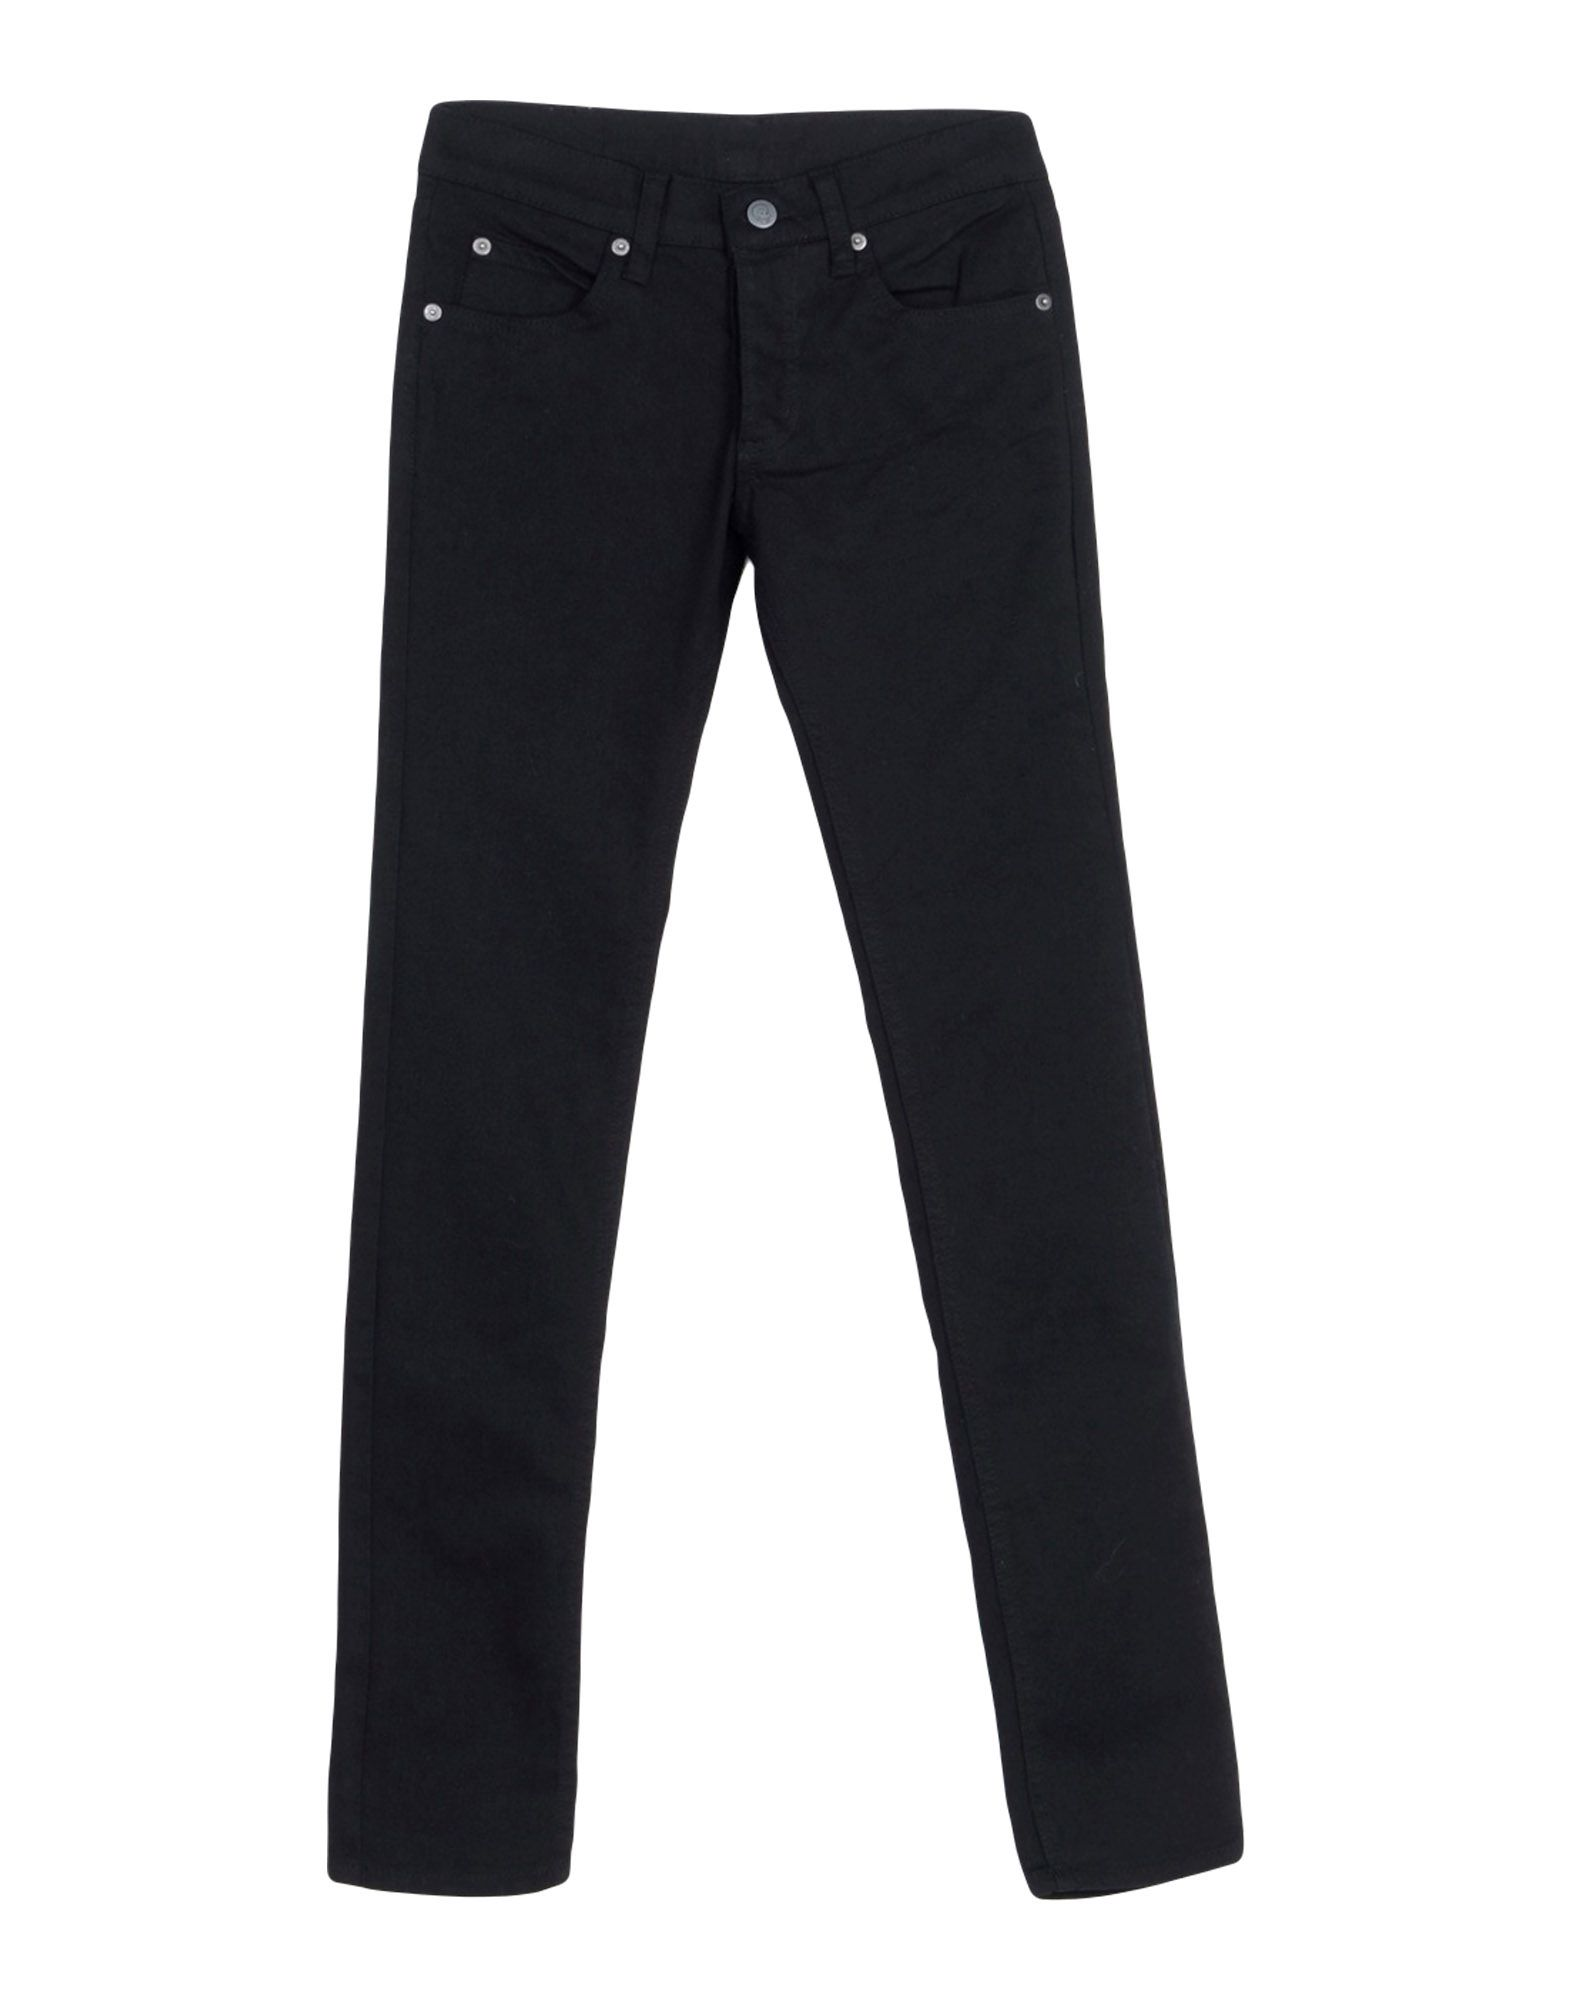 CHEAP MONDAY Denim Pants in Black